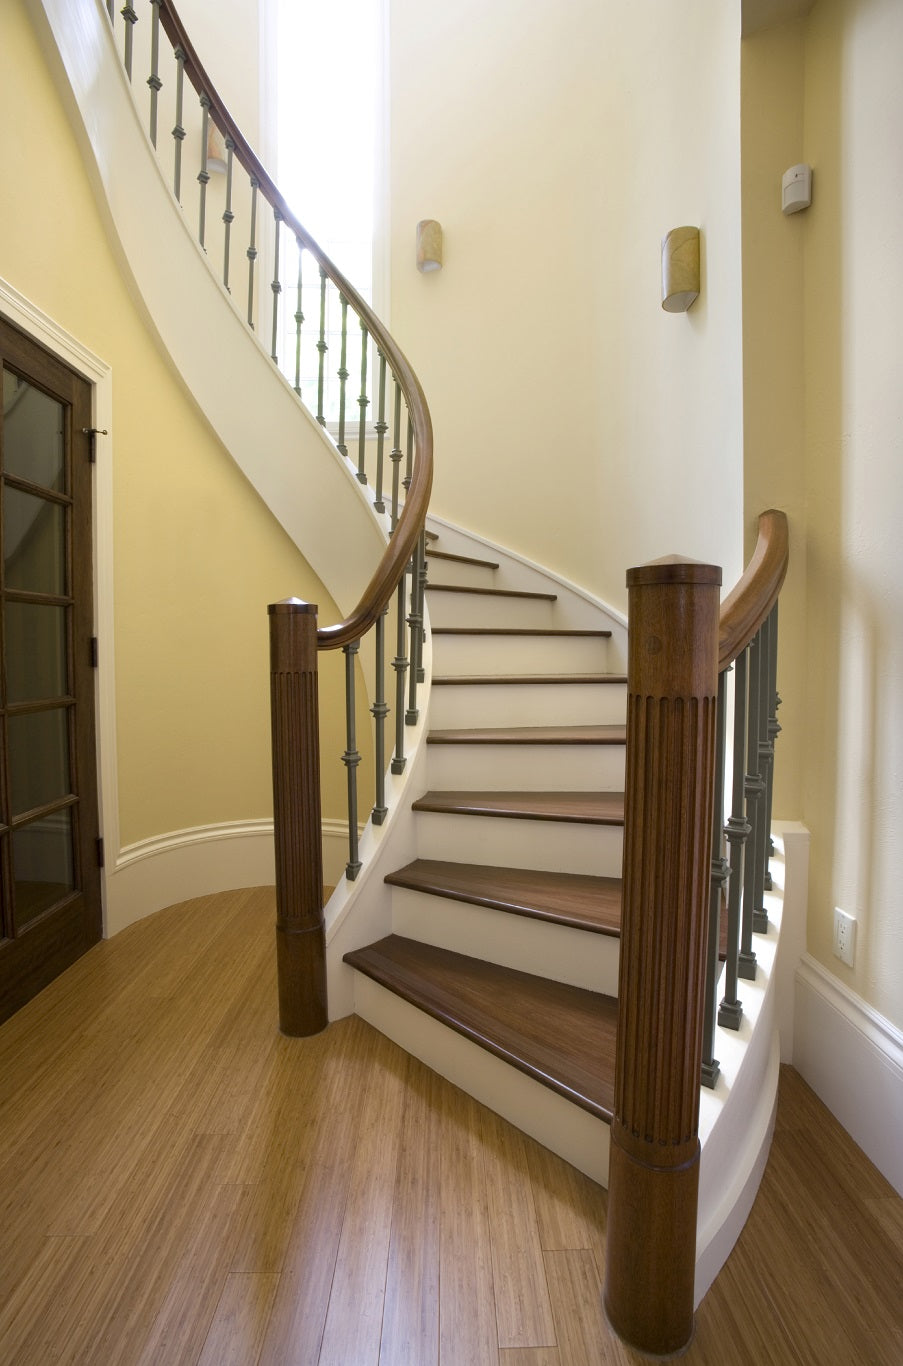 Colors No Slip Tapes Indoor Stairs No Slip Strip